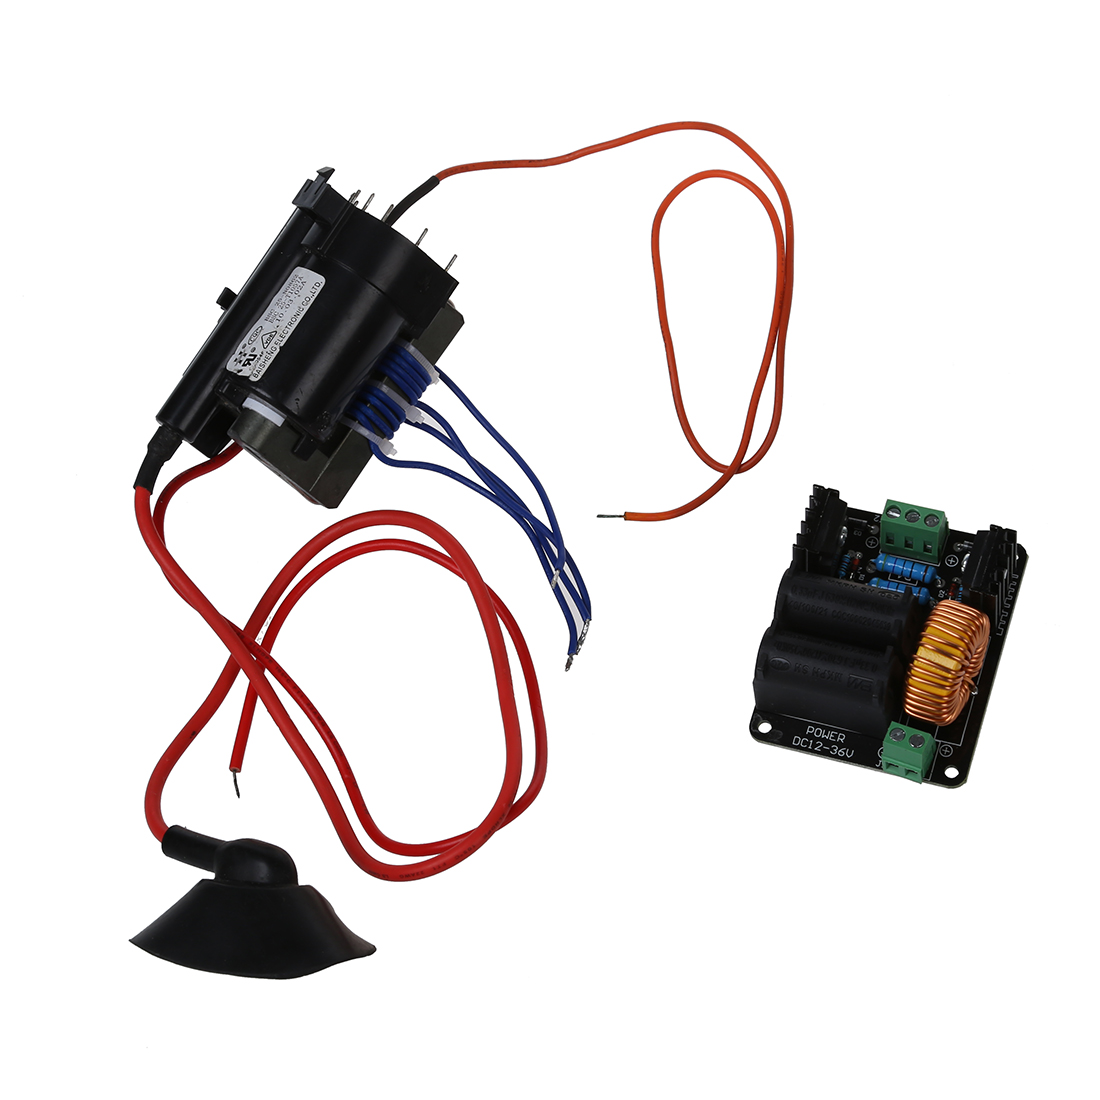 12v 36v zvs tesla coil flyback driver marx generator jacob s ladder ignition coil in signal generators from tools on aliexpress com alibaba group [ 1100 x 1100 Pixel ]